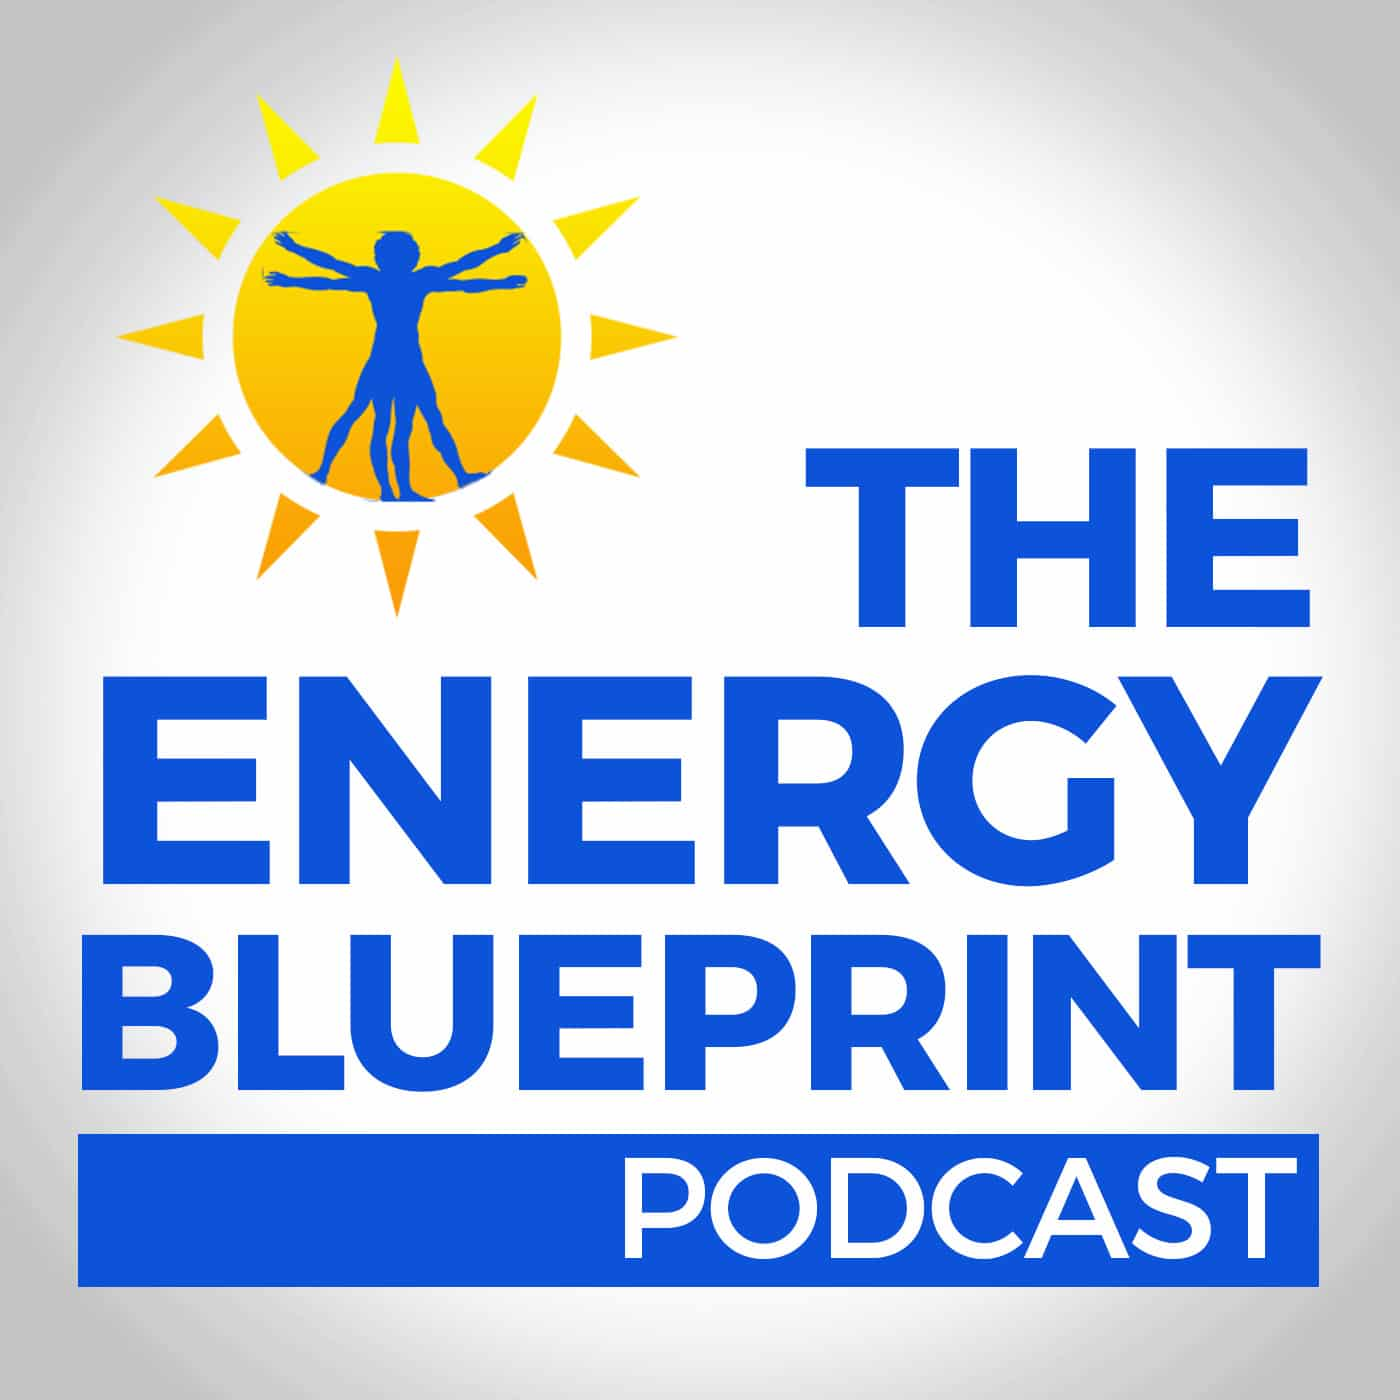 Launching the energy blueprint podcast free book giveaway plus ari energy blueprint podcast 010 malvernweather Image collections